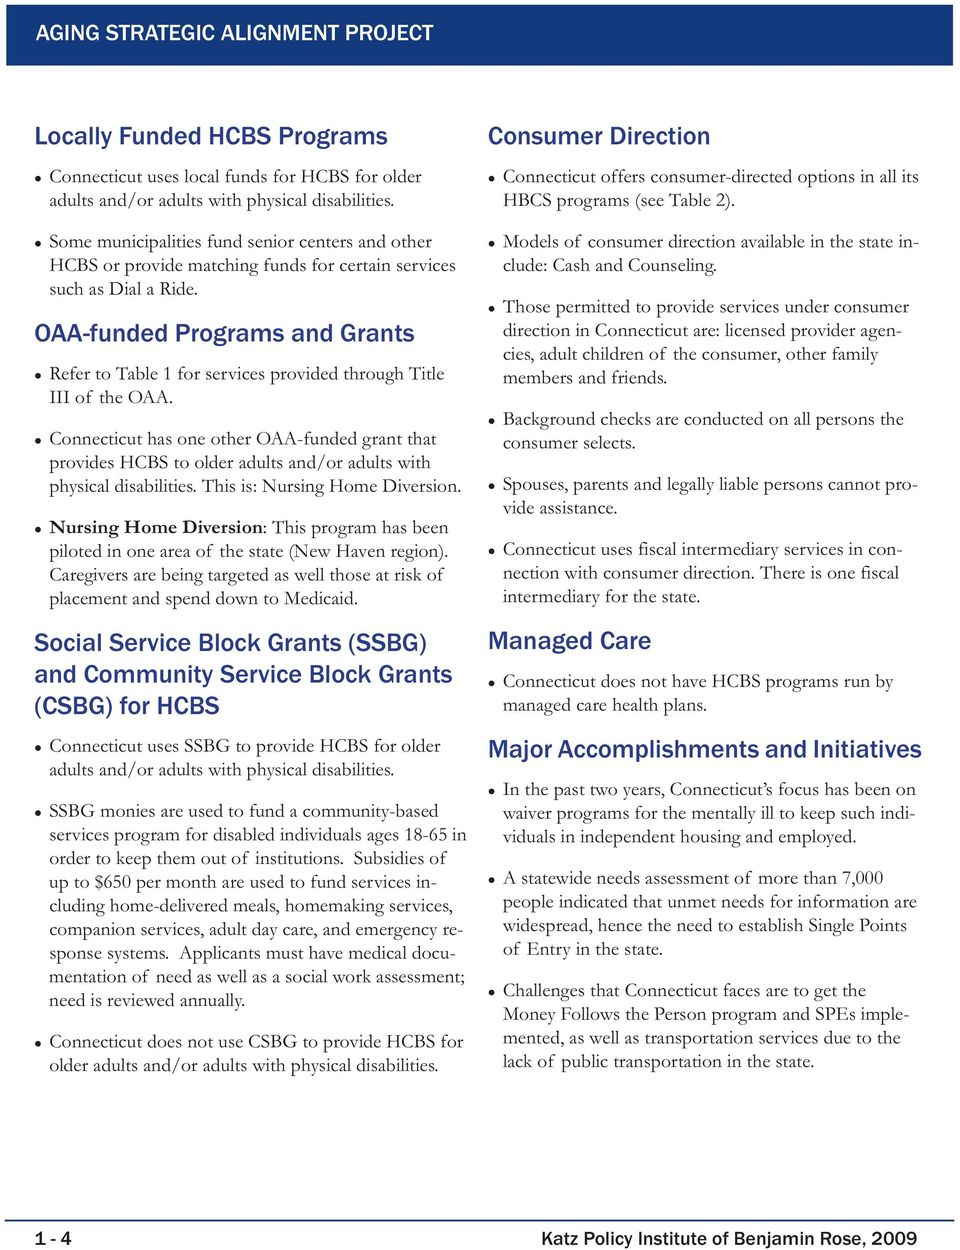 OAA-funded s and Grants Refer to Table 1 for services provided through Title III of the OAA. has one other OAA-funded grant that provides HCBS to older adults and/or adults with physical disabilities.